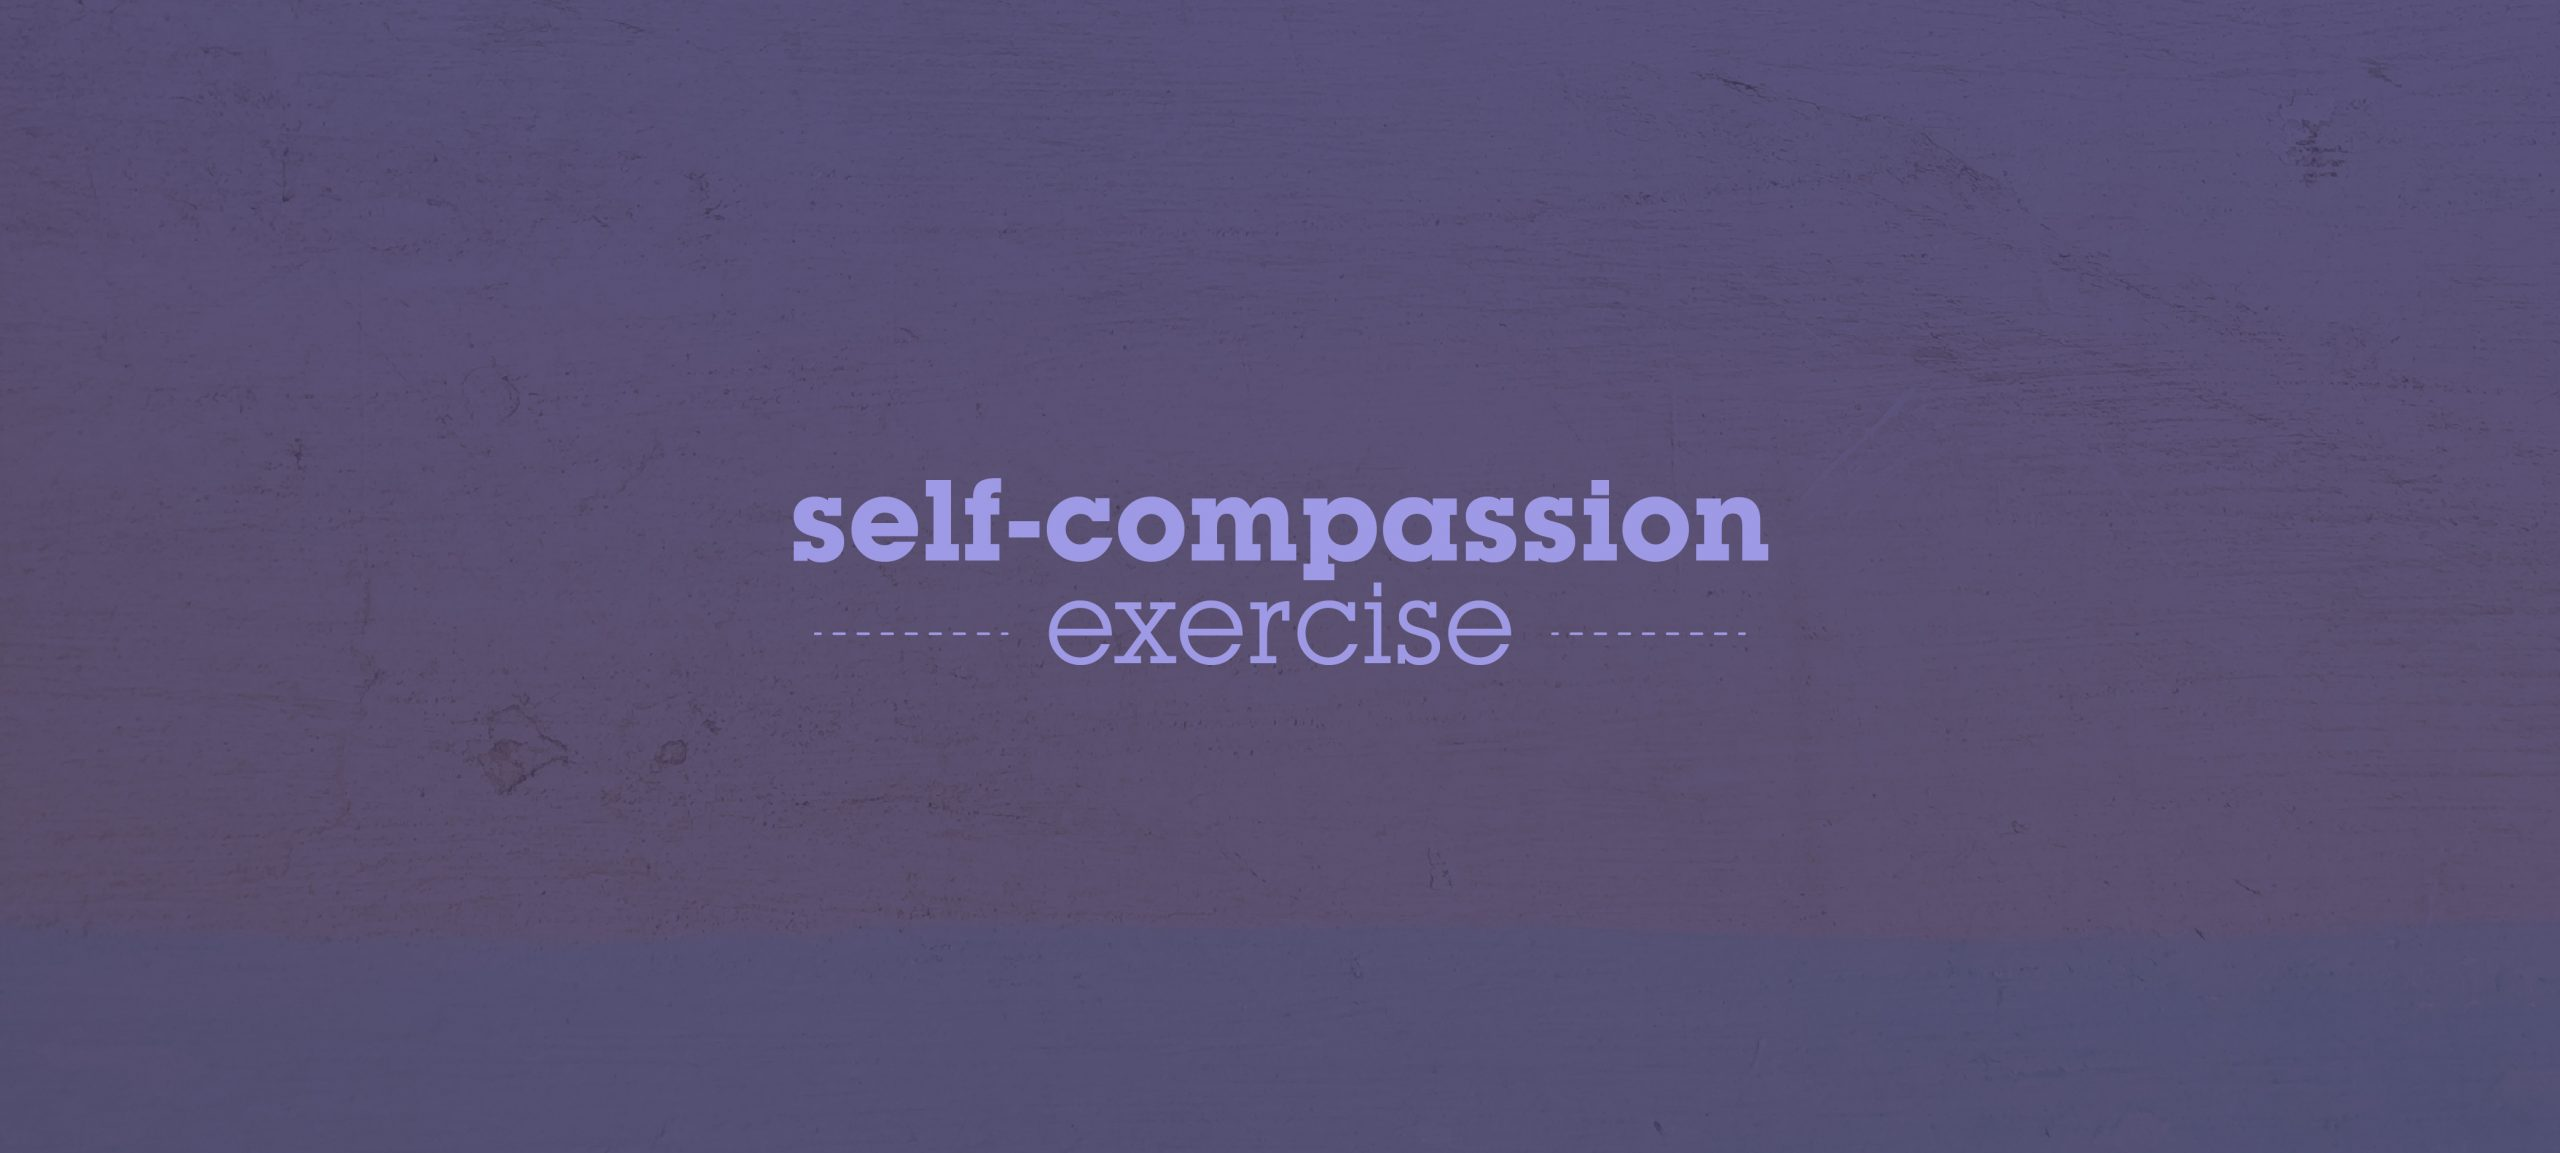 Self-compassion exercise